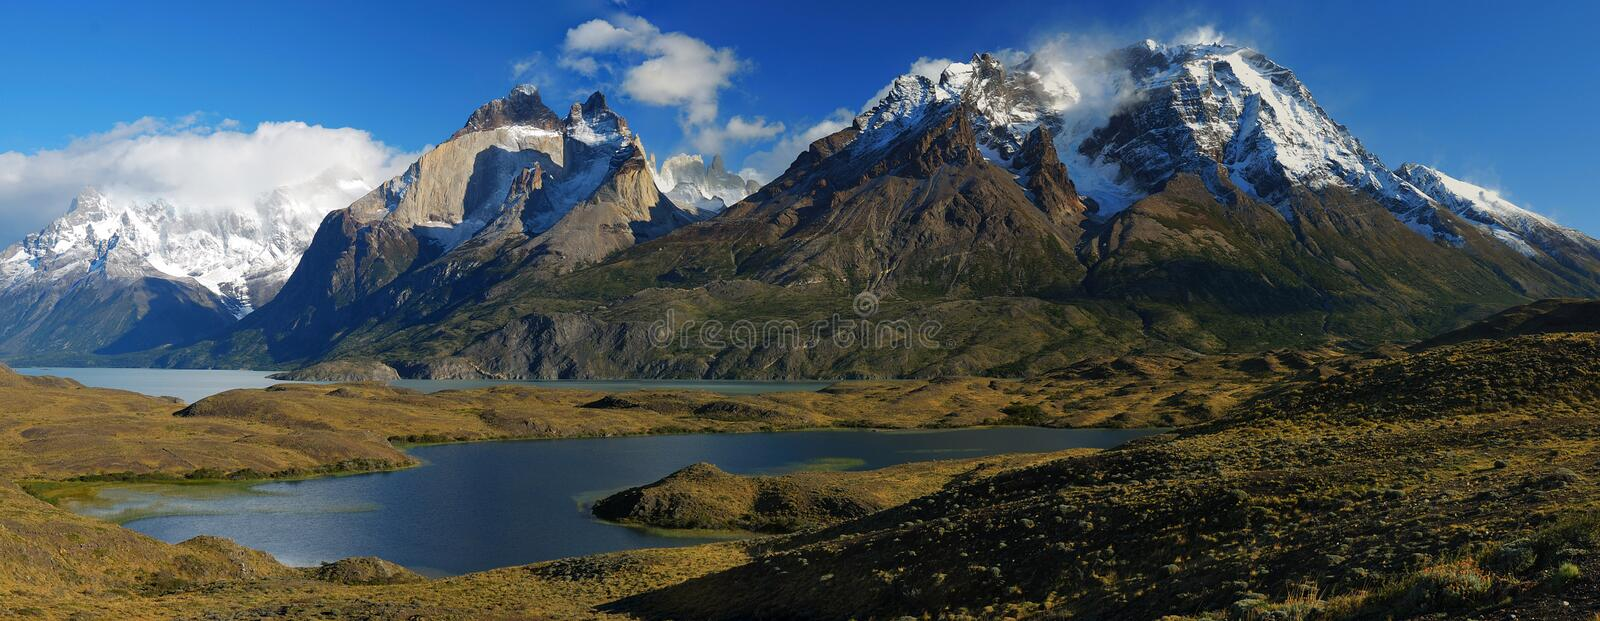 Monumental Torres del Paine image stock